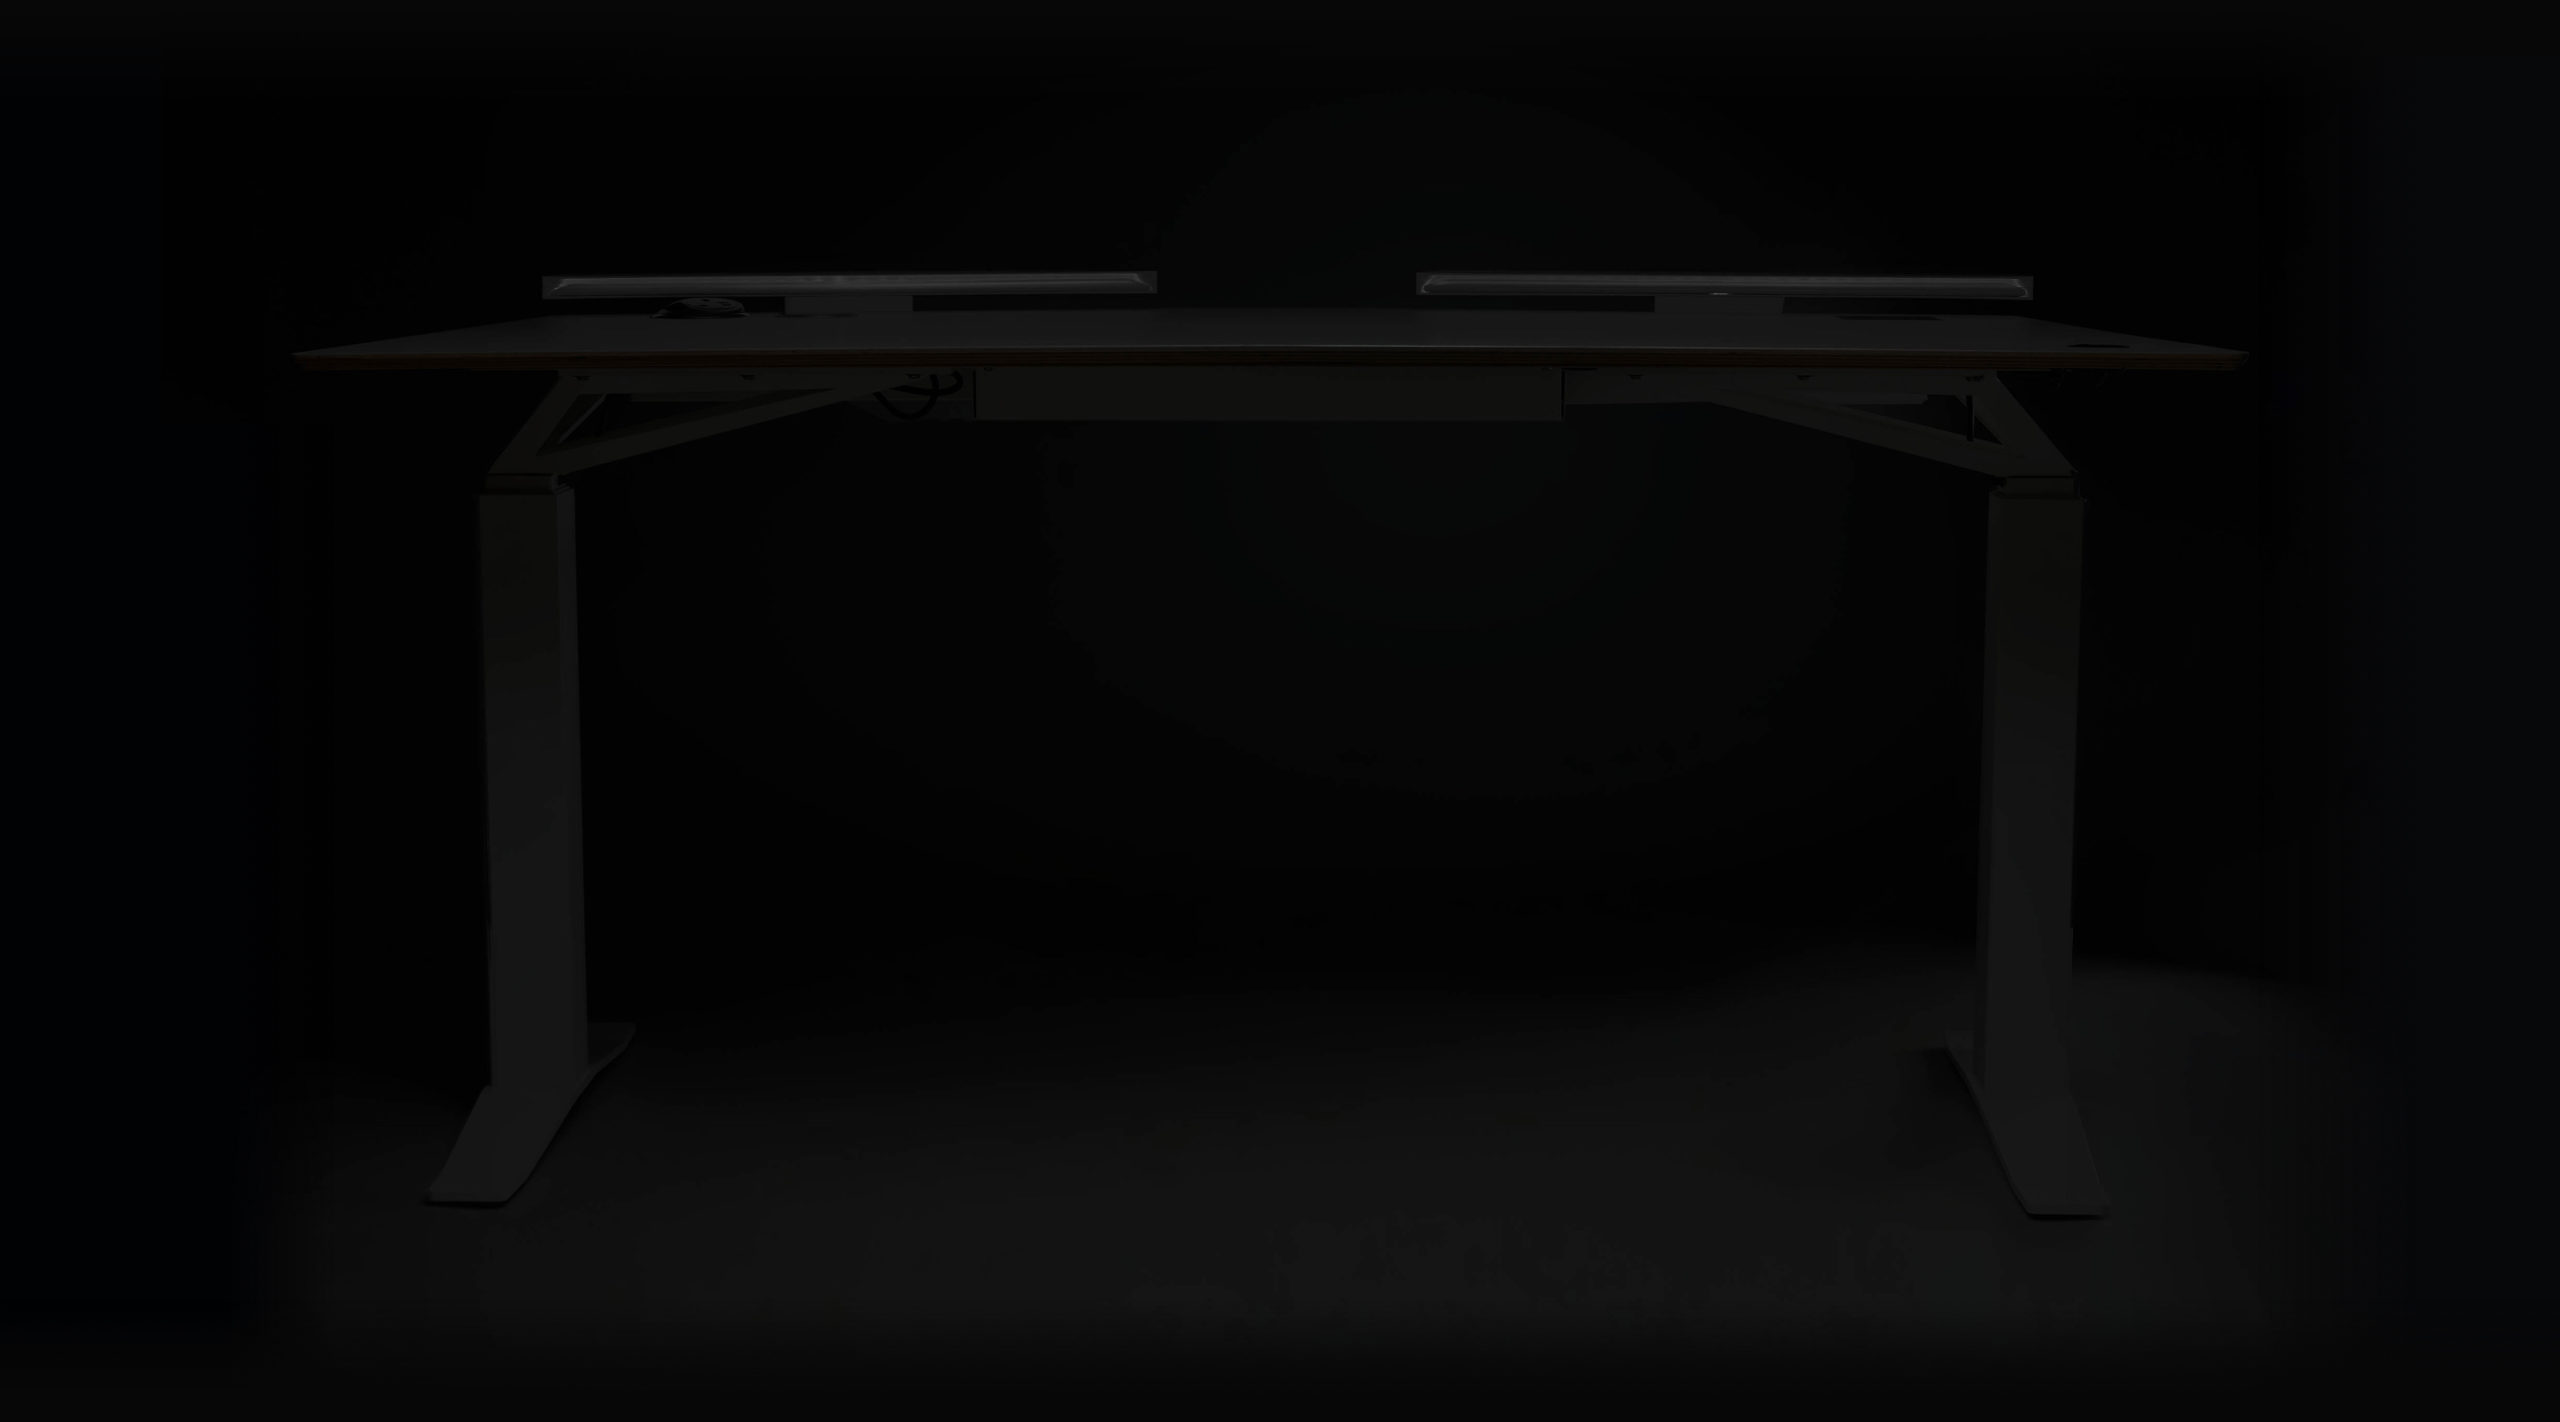 V-DESK Designer - The ultimate electric height adjustable standing desk with Lightbar, power outlets and a dedicated space for your monitor mount. Sit stand desk made in the UK.